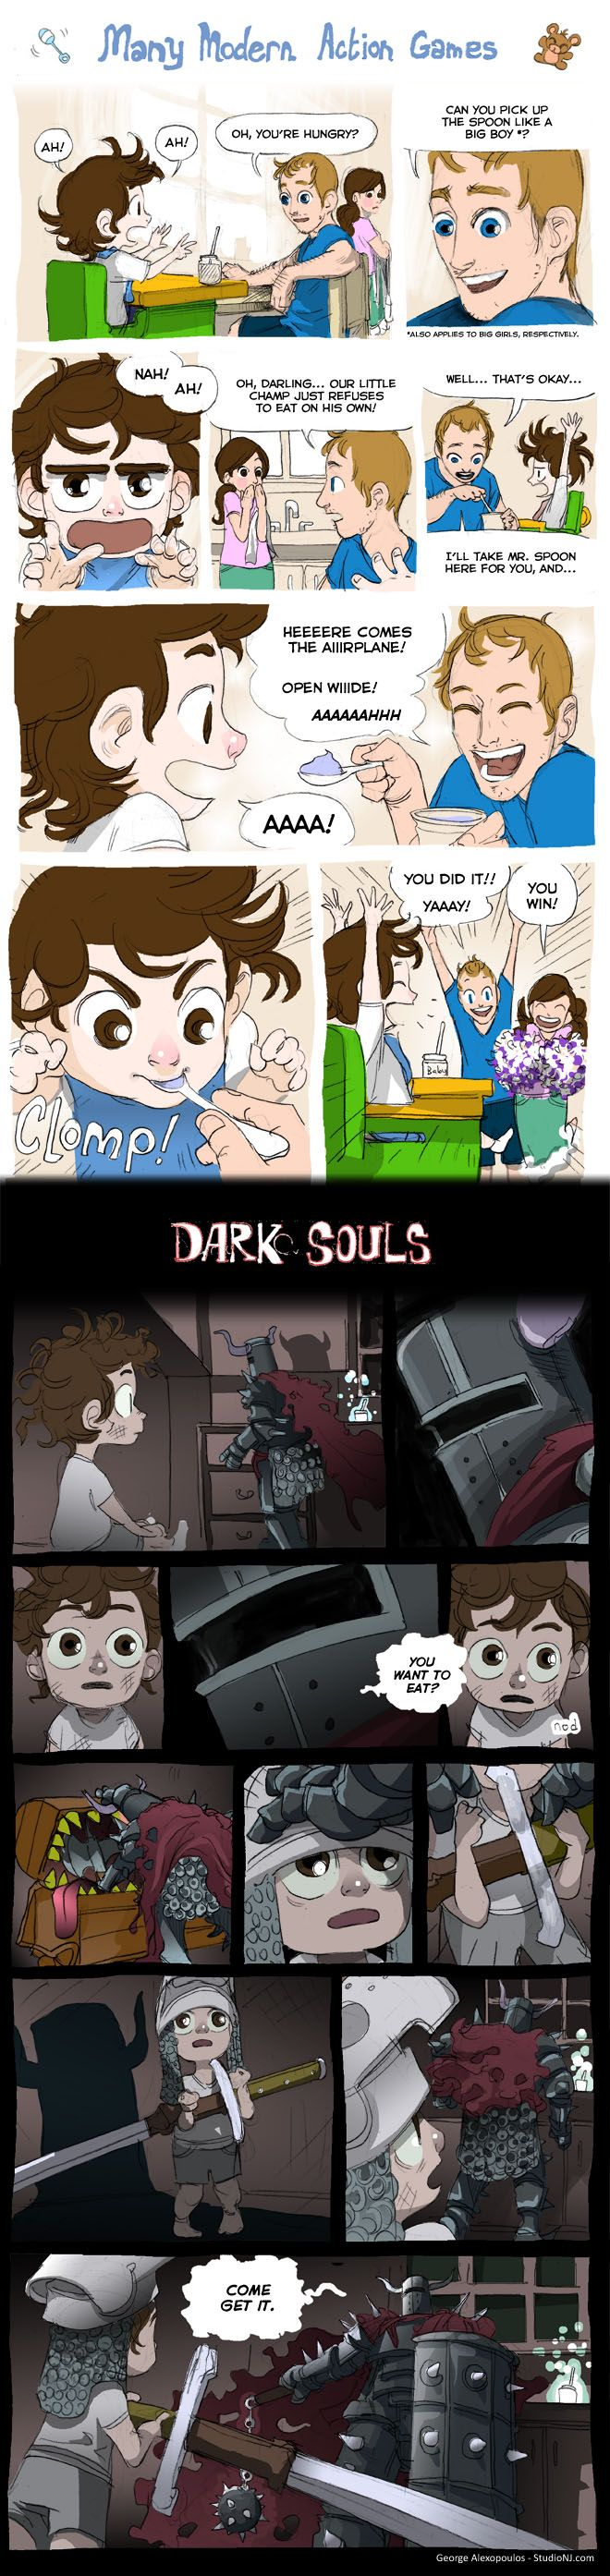 Action Games Vs. Dark Souls is a new comic by George Alexopolus